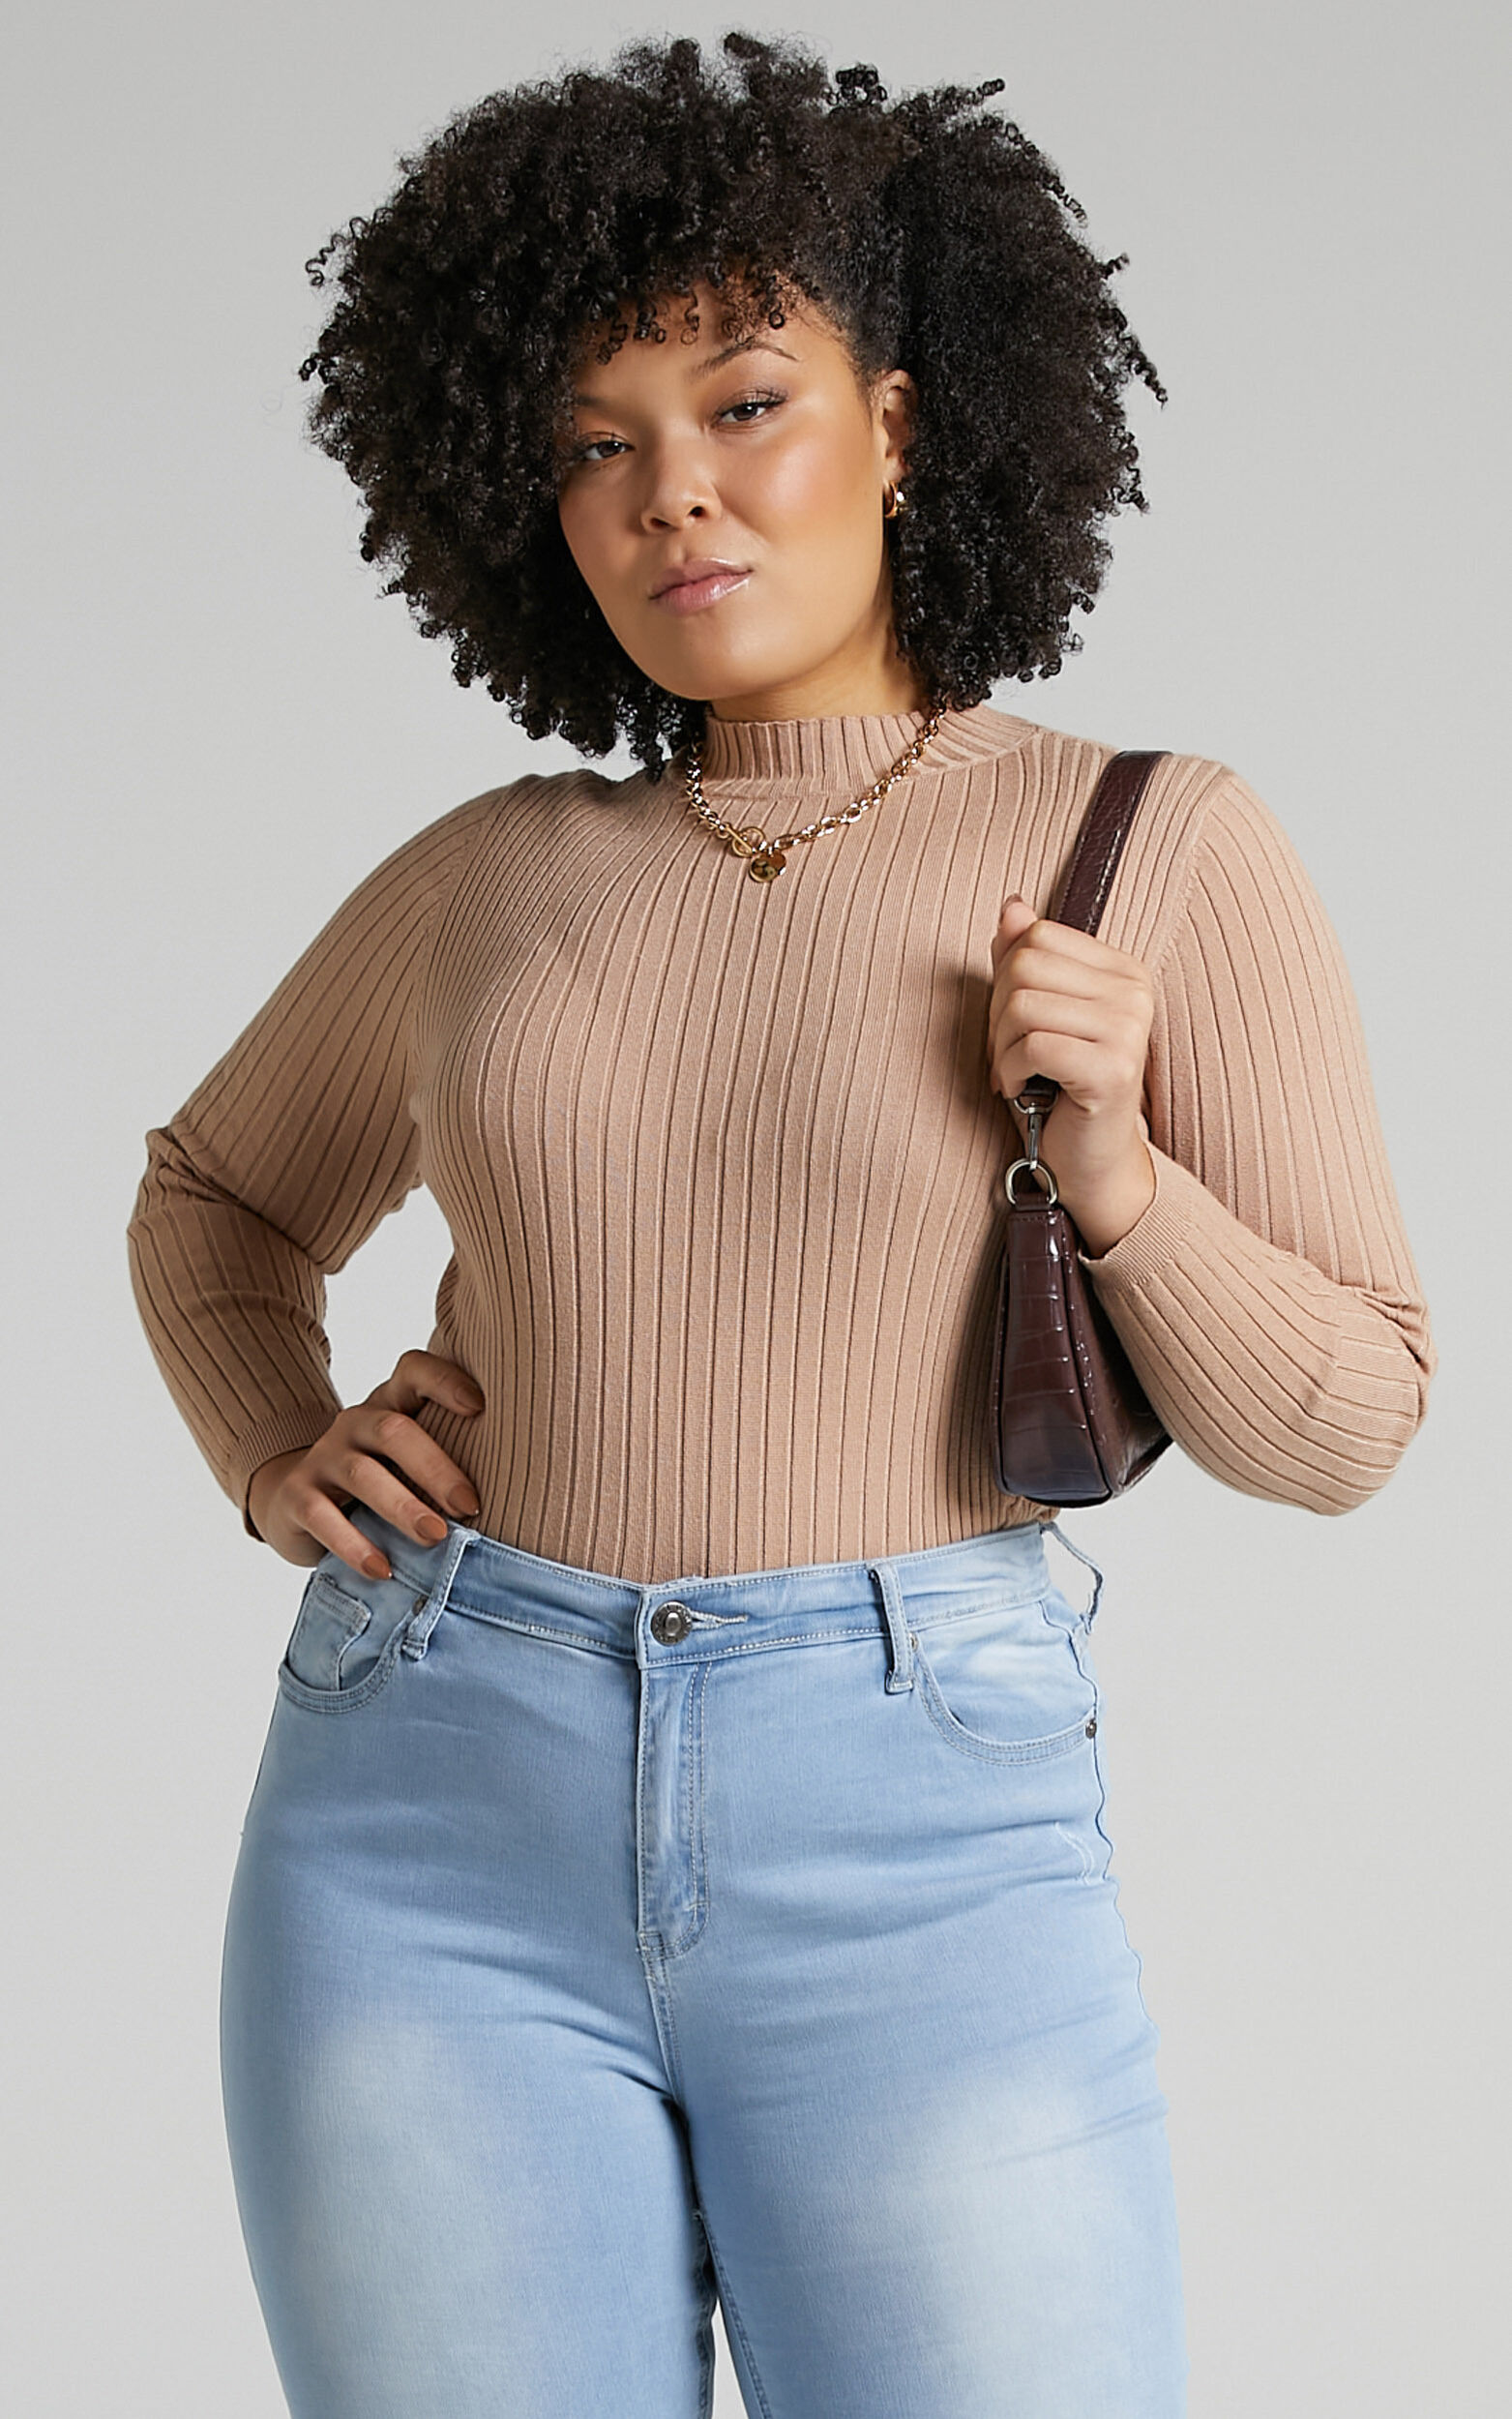 Downtown Dreams Long Sleeve Knit Top in Light Mocha - 06, BRN1, super-hi-res image number null